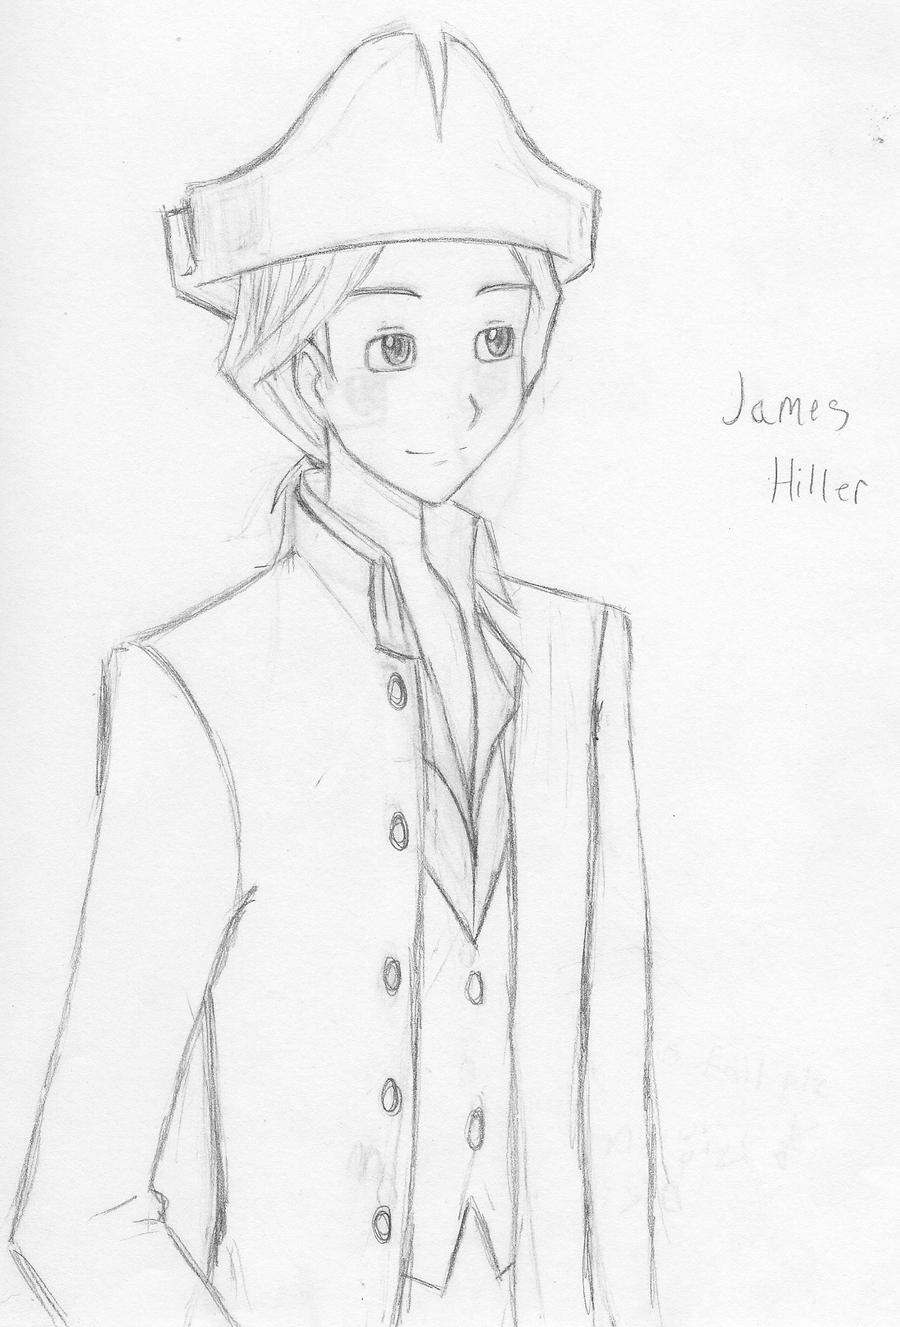 James Hiller by aipuri